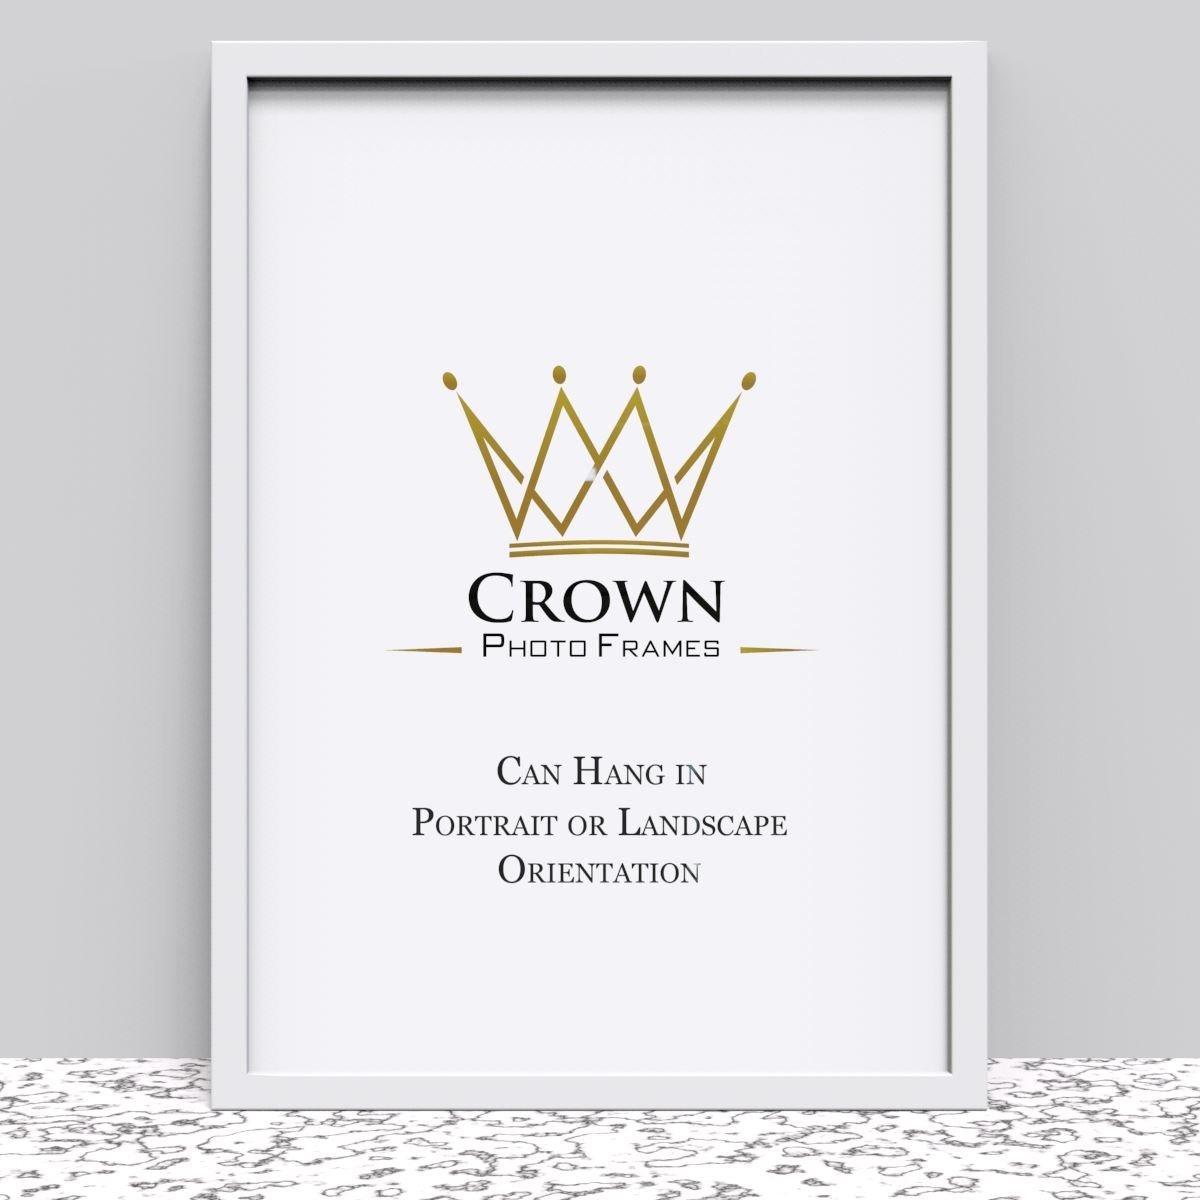 Crown Oak Photo Frame for A1 59.4 x 84.1 cm (23.4x33.1 Inches) Picture Photo Poster, Hang on wall in both Landscape and Portrait Crown Photo Frames